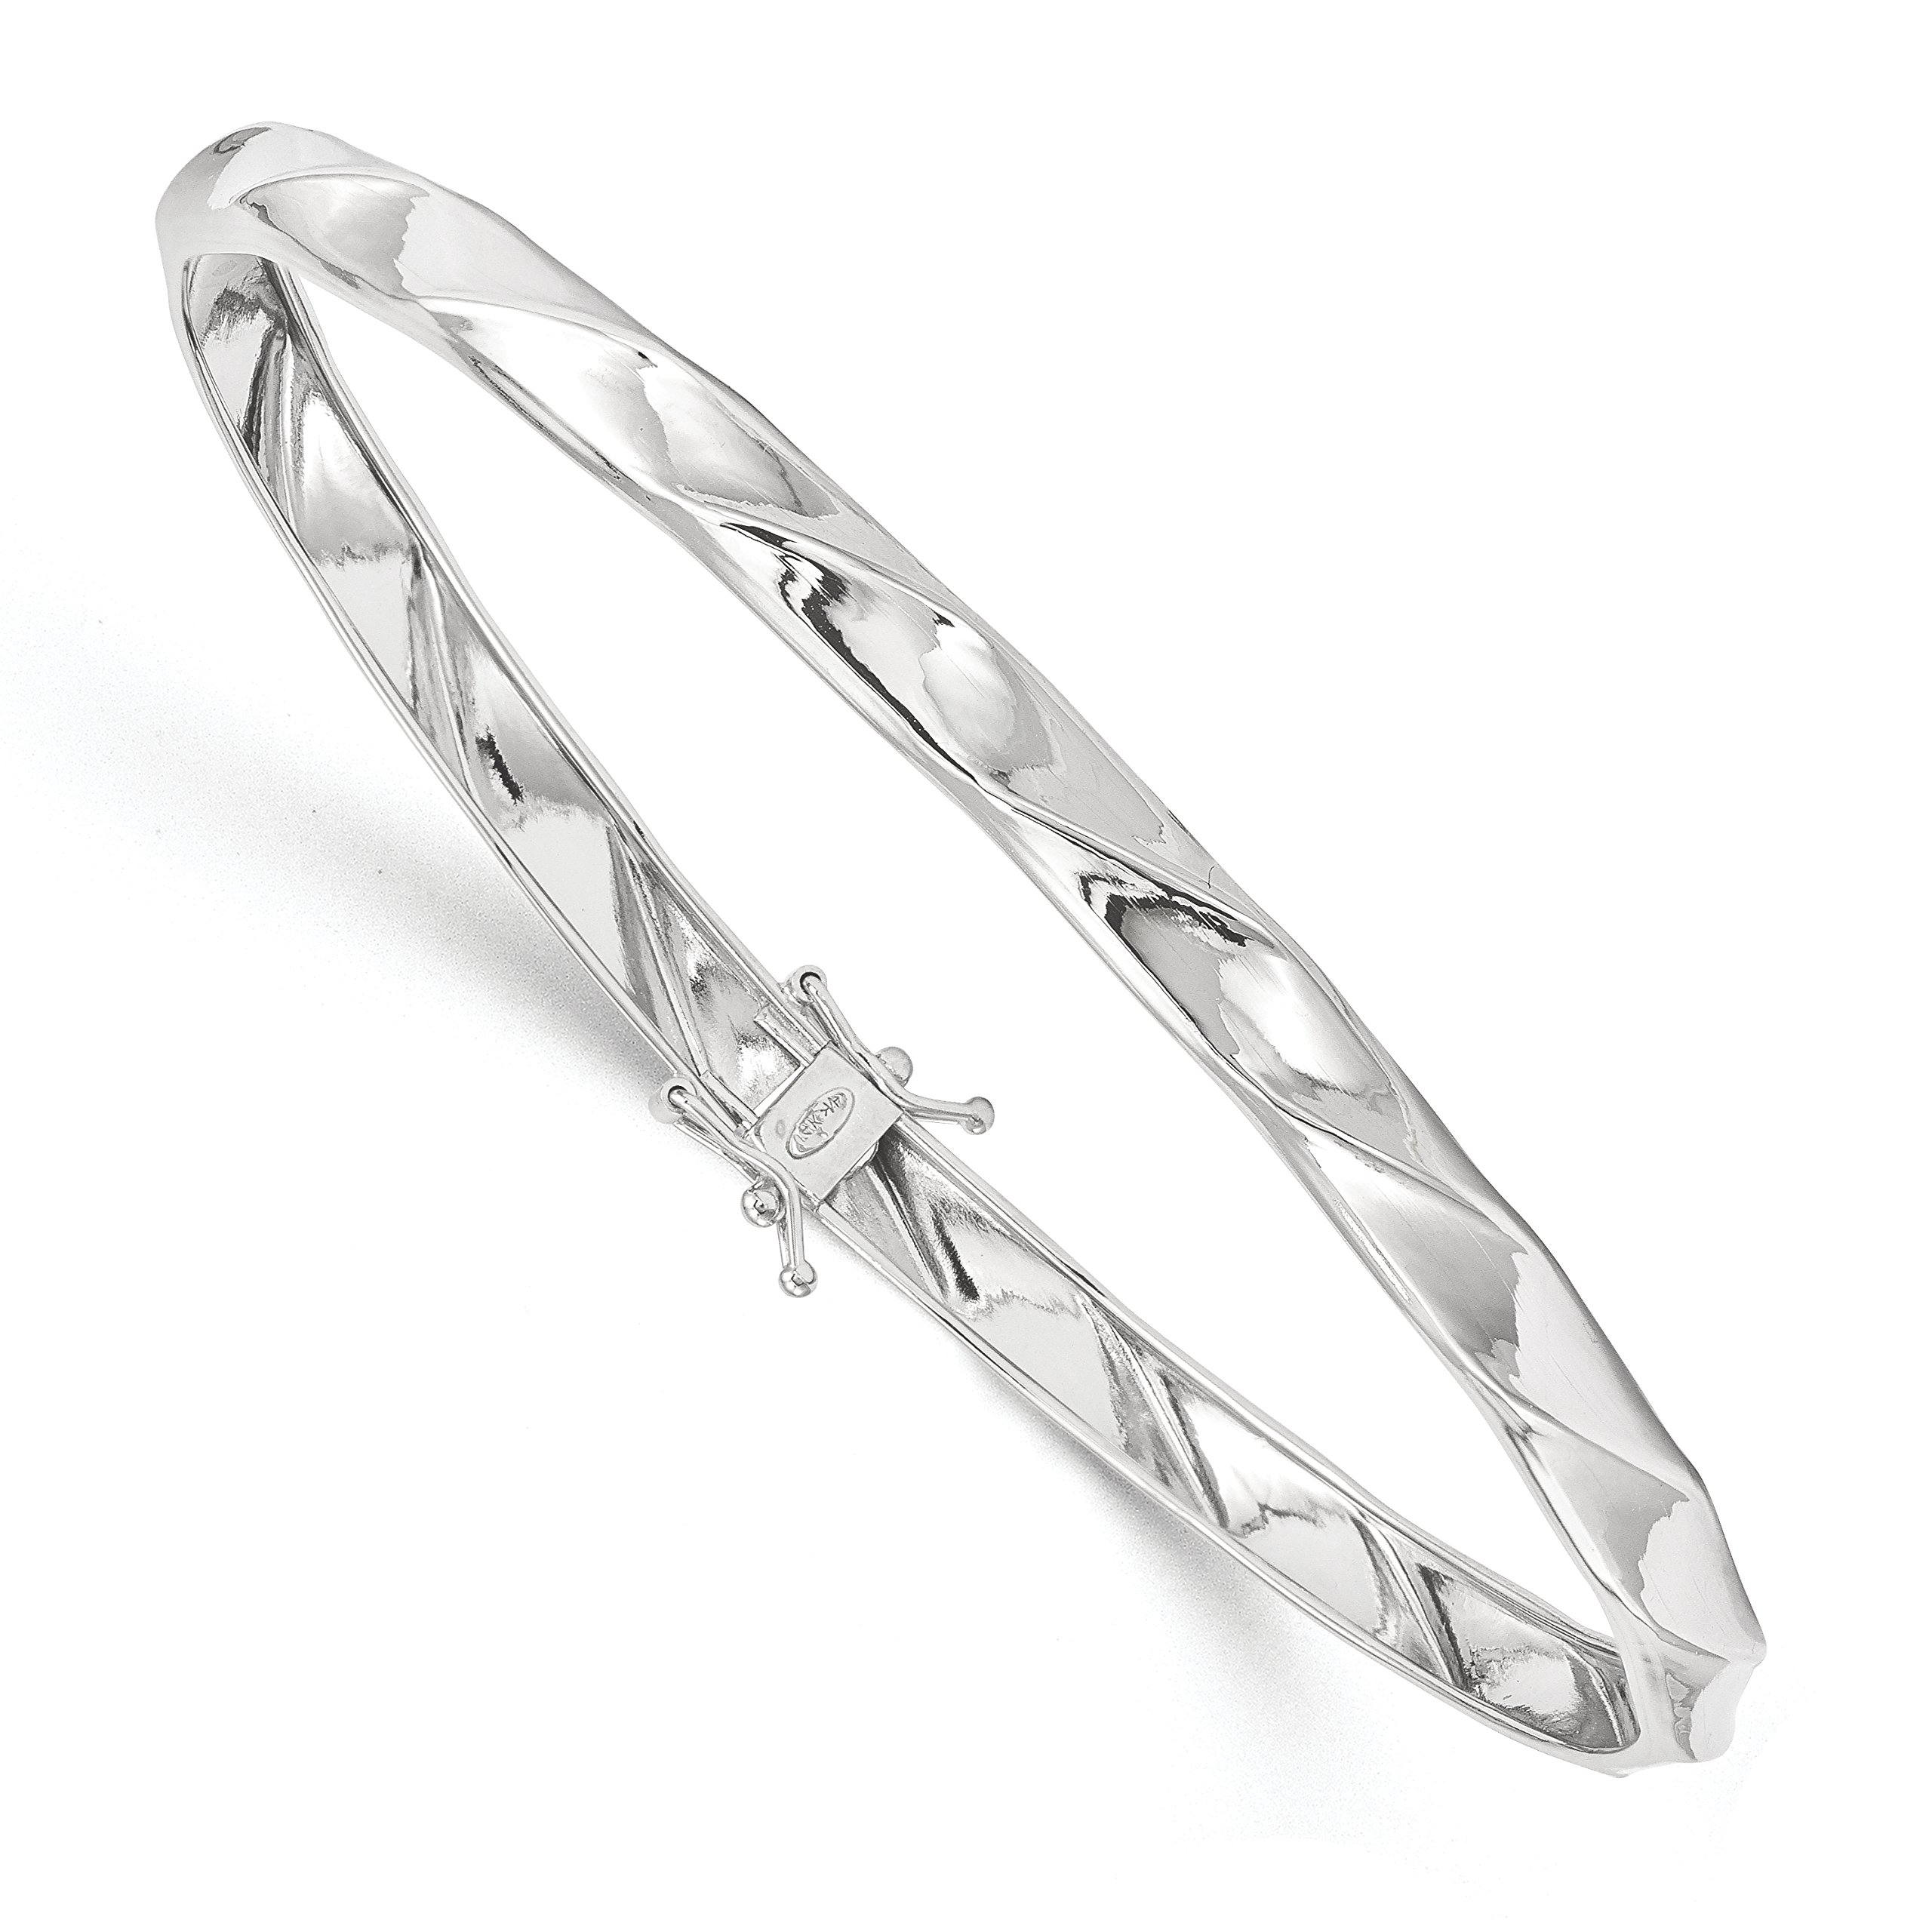 ICE CARATS 14k White Gold Twisted Bangle Bracelet Cuff Expandable Stackable Slip On Fine Jewelry Gift Set For Women Heart